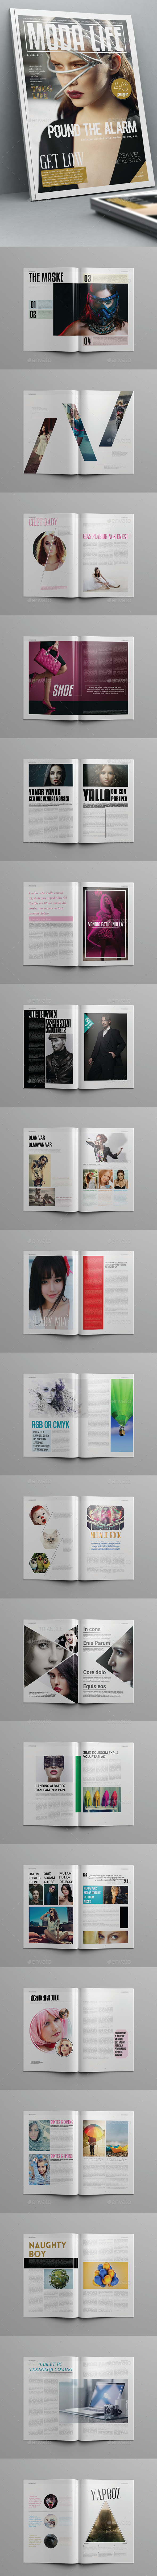 Moda Life Magazine Template 40 Pages - Magazines Print Templates